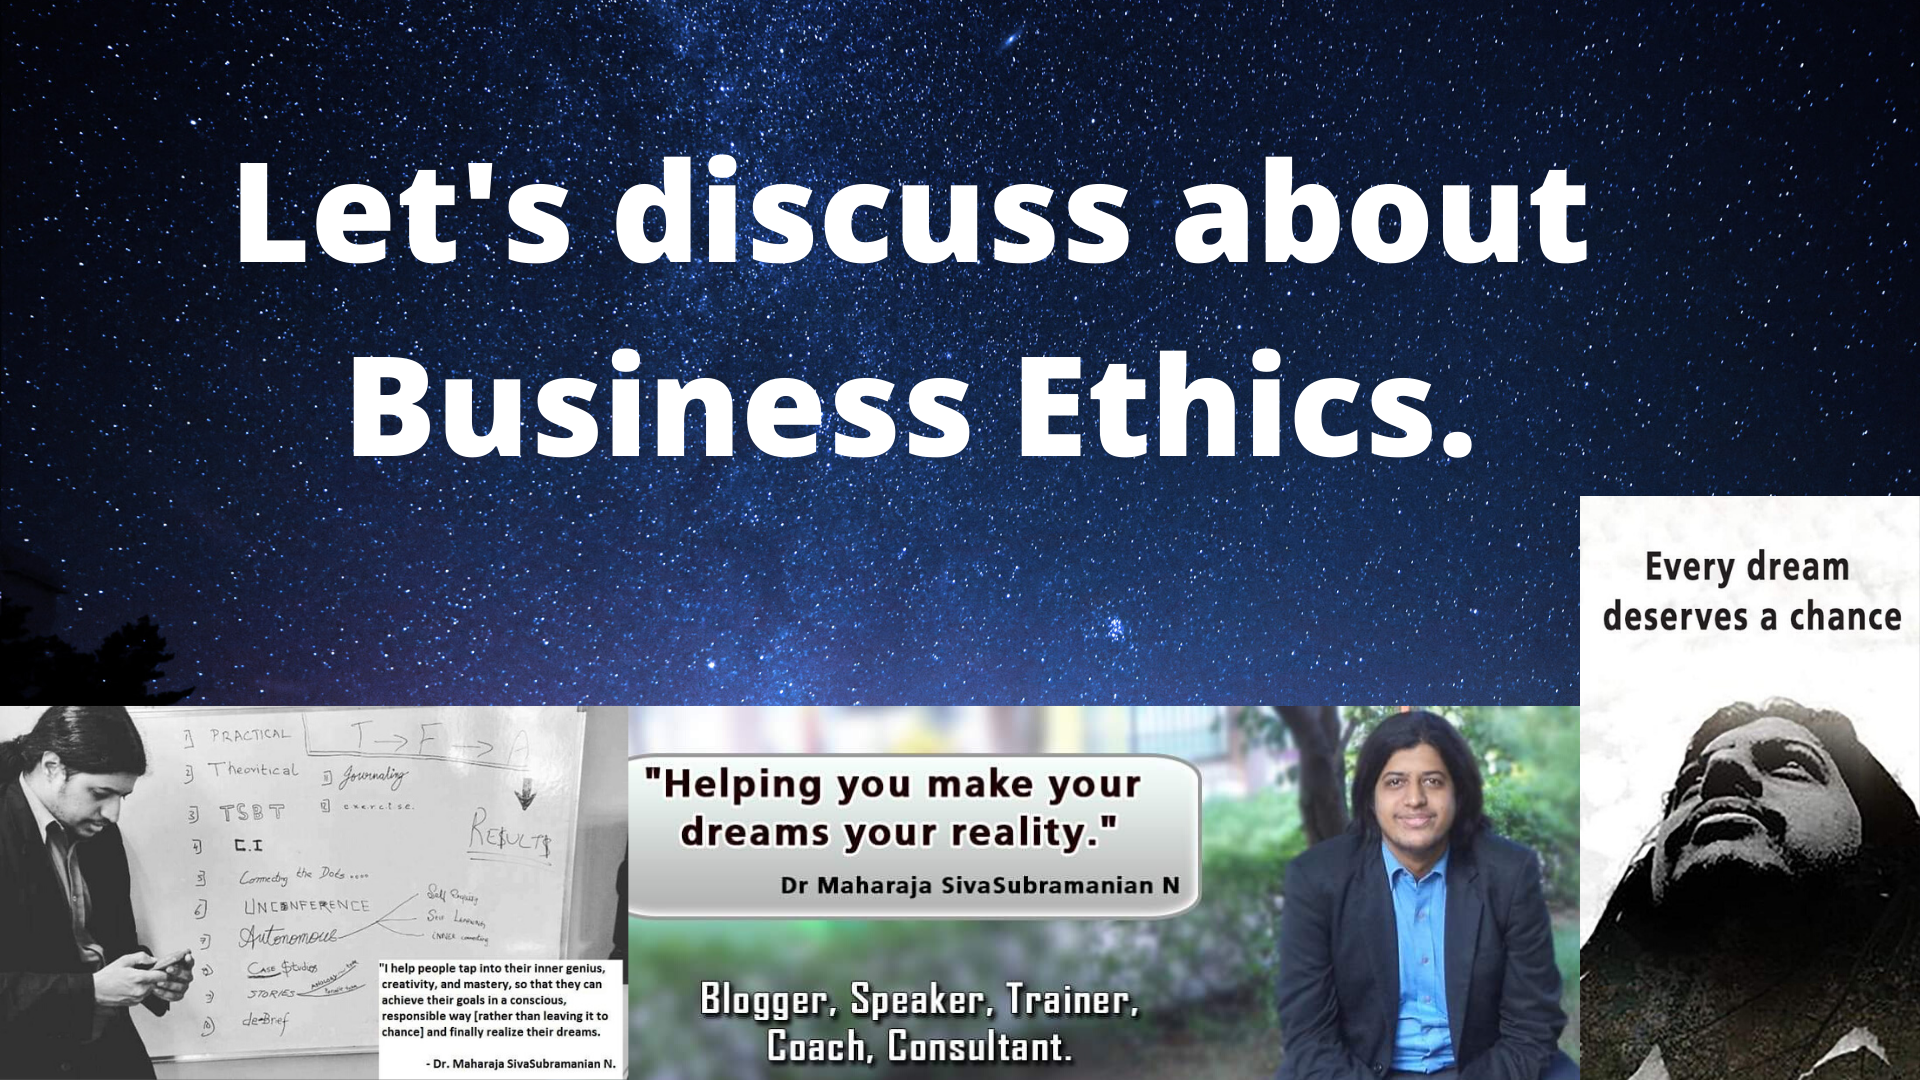 Let's discuss about Business Ethics.